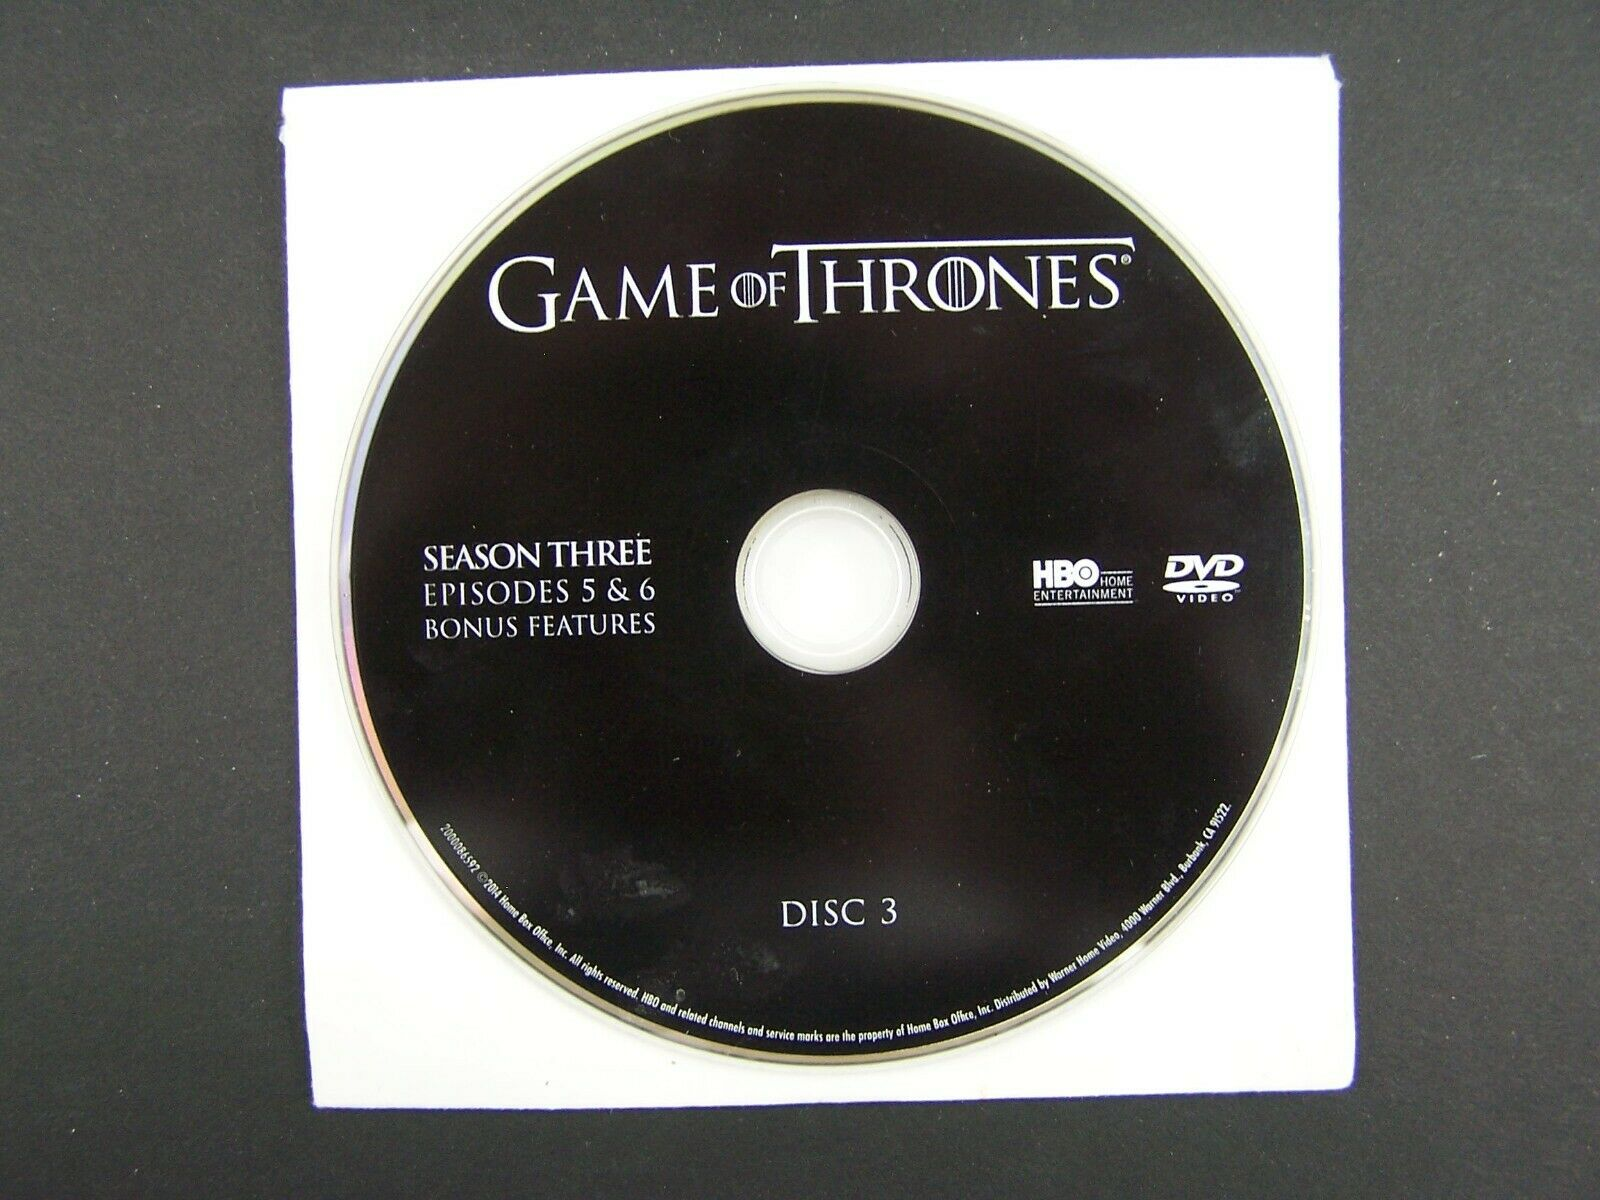 Game Of Thrones Season 3 Disc 3 Replacement DVD